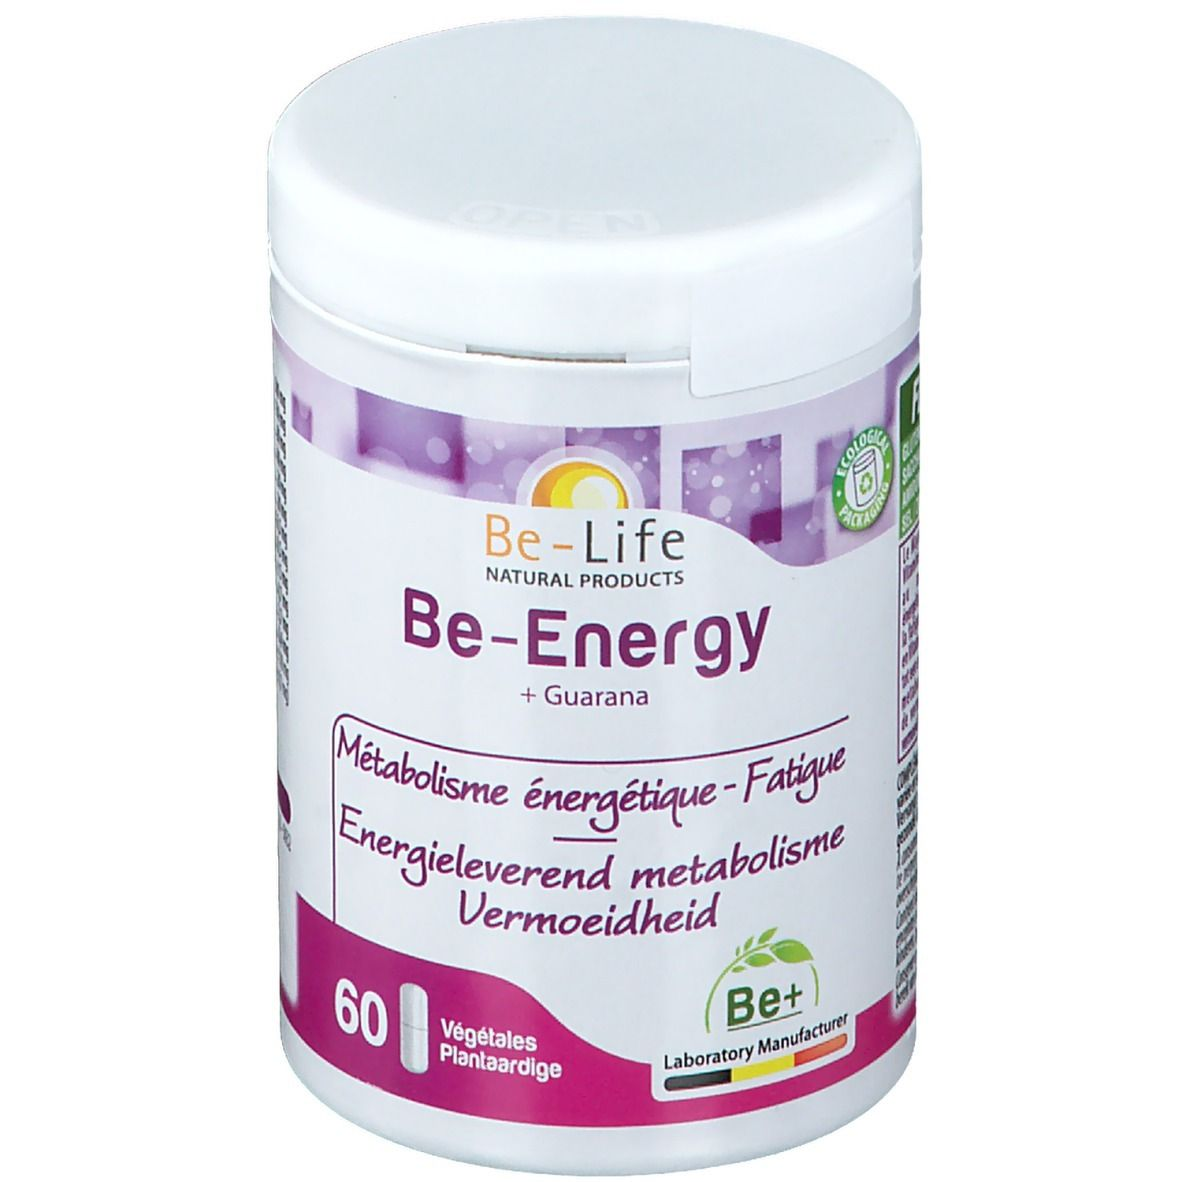 Image of Be-Life Be-Energy + Guarana